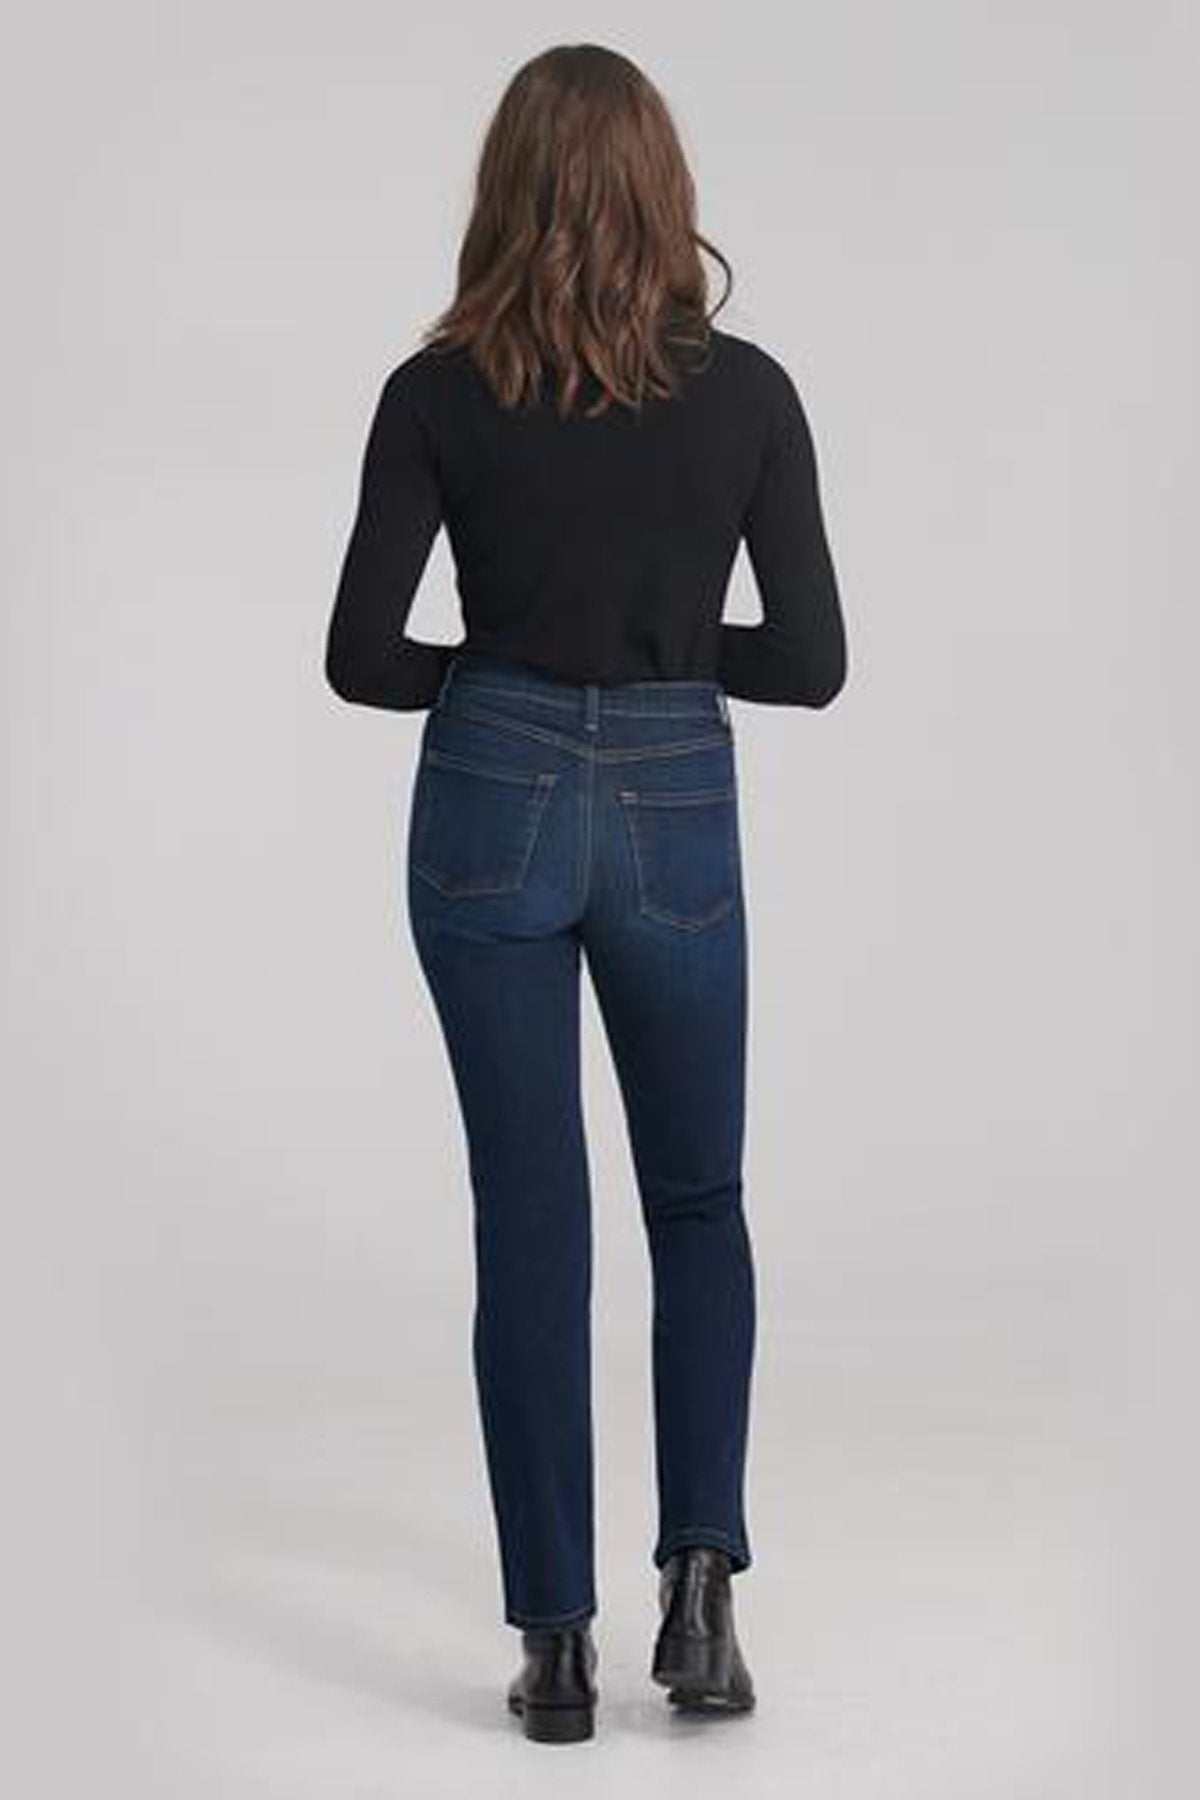 Classic Rise Straight Yoga Jean, Namaste, back view, classic rise waist, straight cut, 32 inch inseam, sizes 24-34, made in Canada